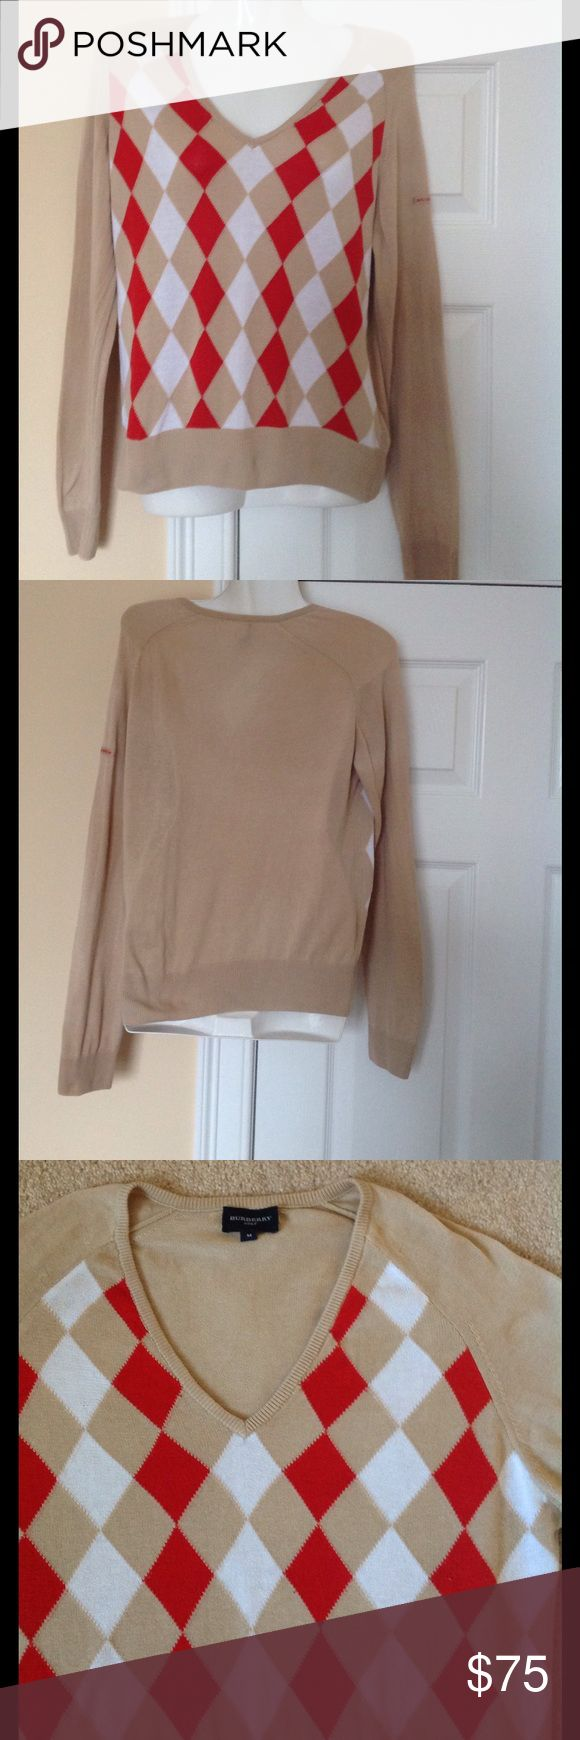 Burberry golf sweater size M In very good condition sweater by Burberry London, chest 18, sleeve 14, length 21 Burberry Sweaters V-Necks